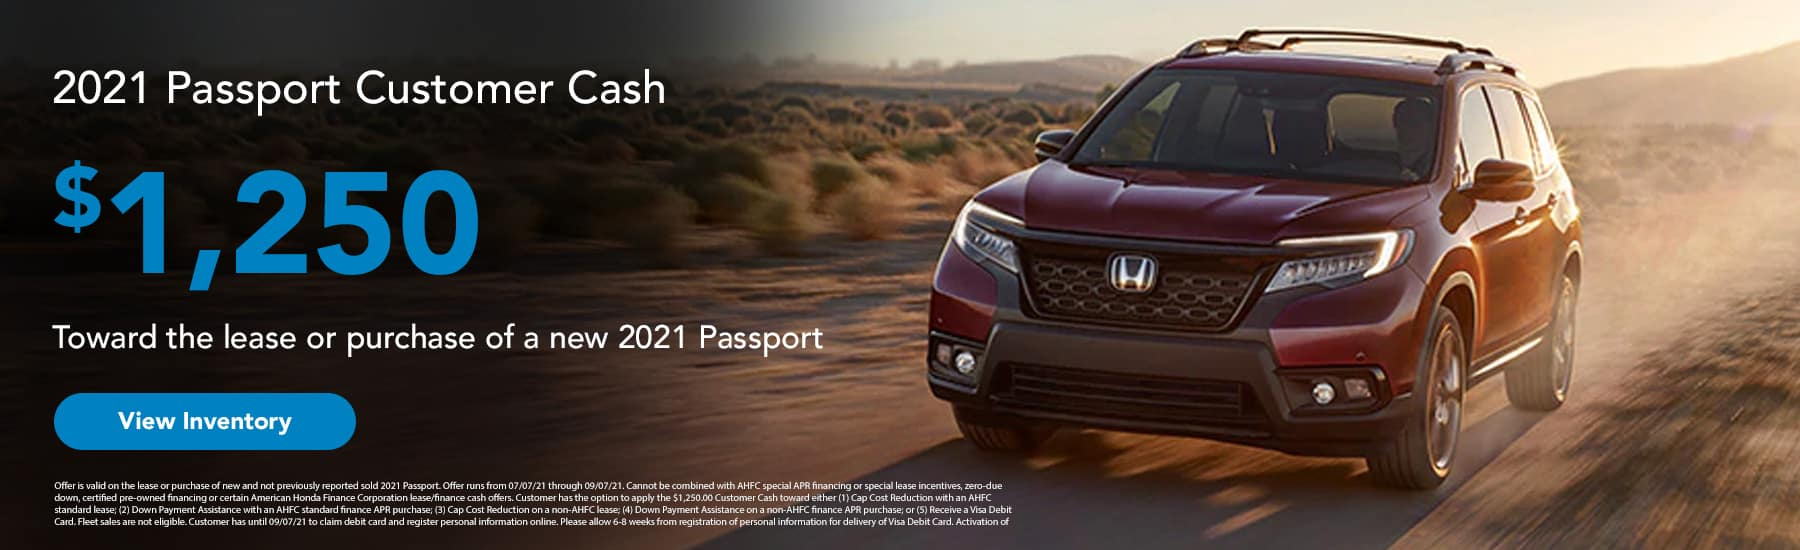 2021 Passport customer Cash $1250.00 Toward the lease or purchase of a new 2021 Passport